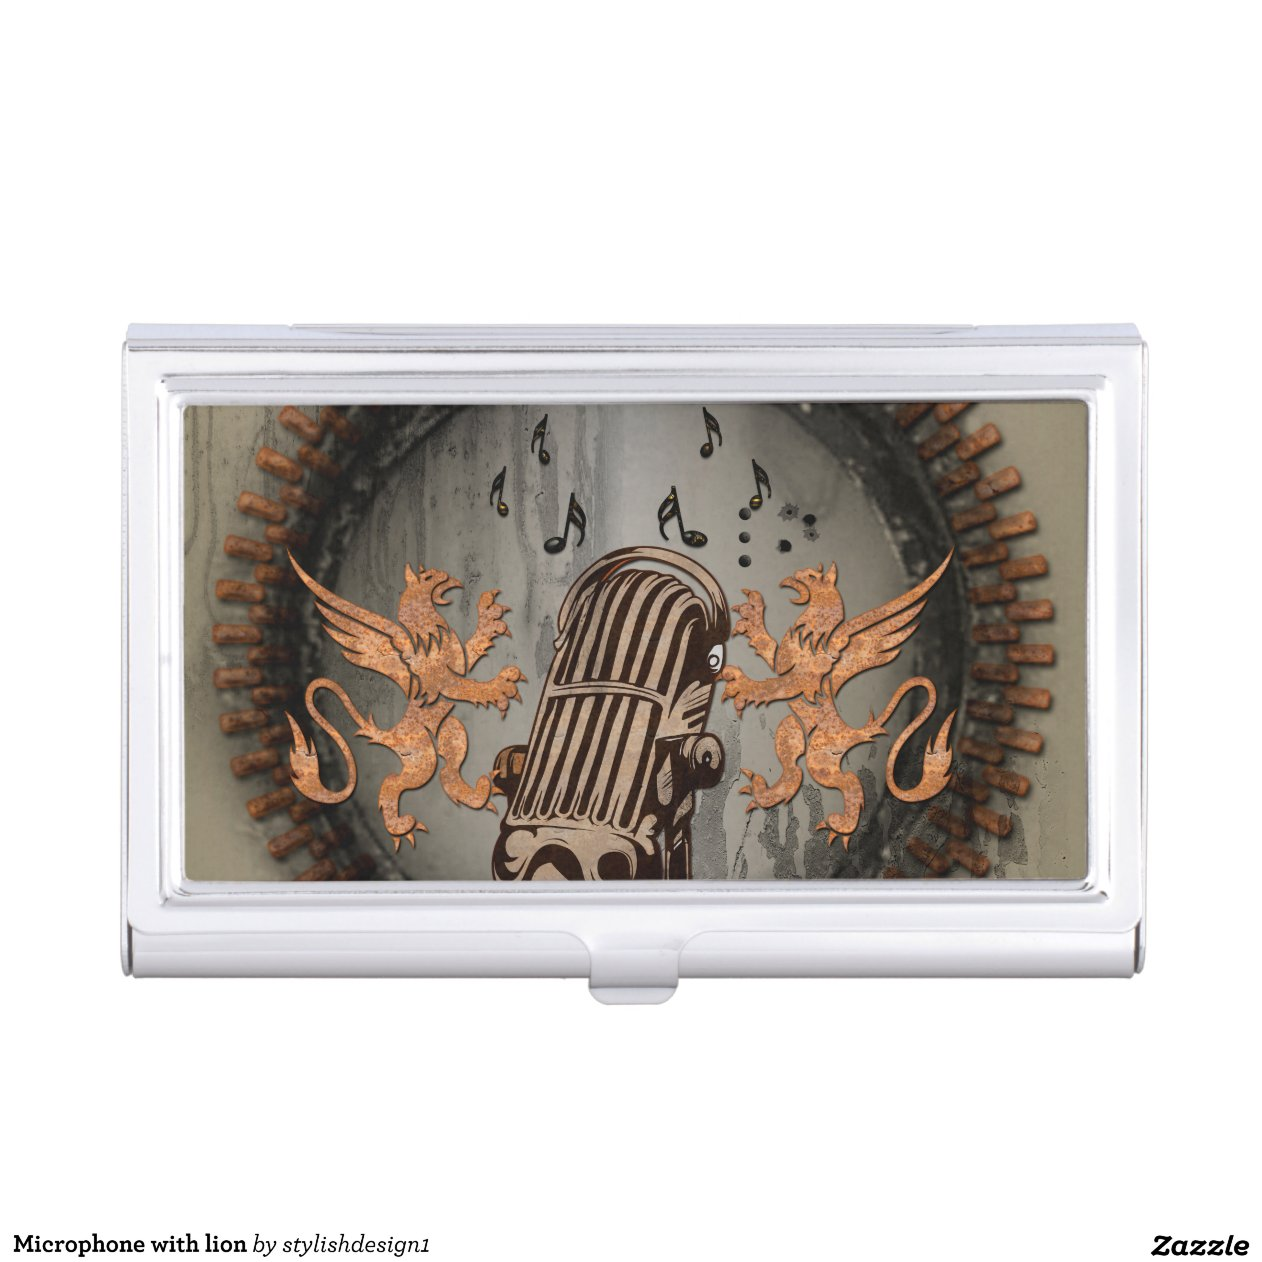 Spinning Business Card Holder Microphone With Lion Business Card Holder Rbfacdacedccfeac Zhvb